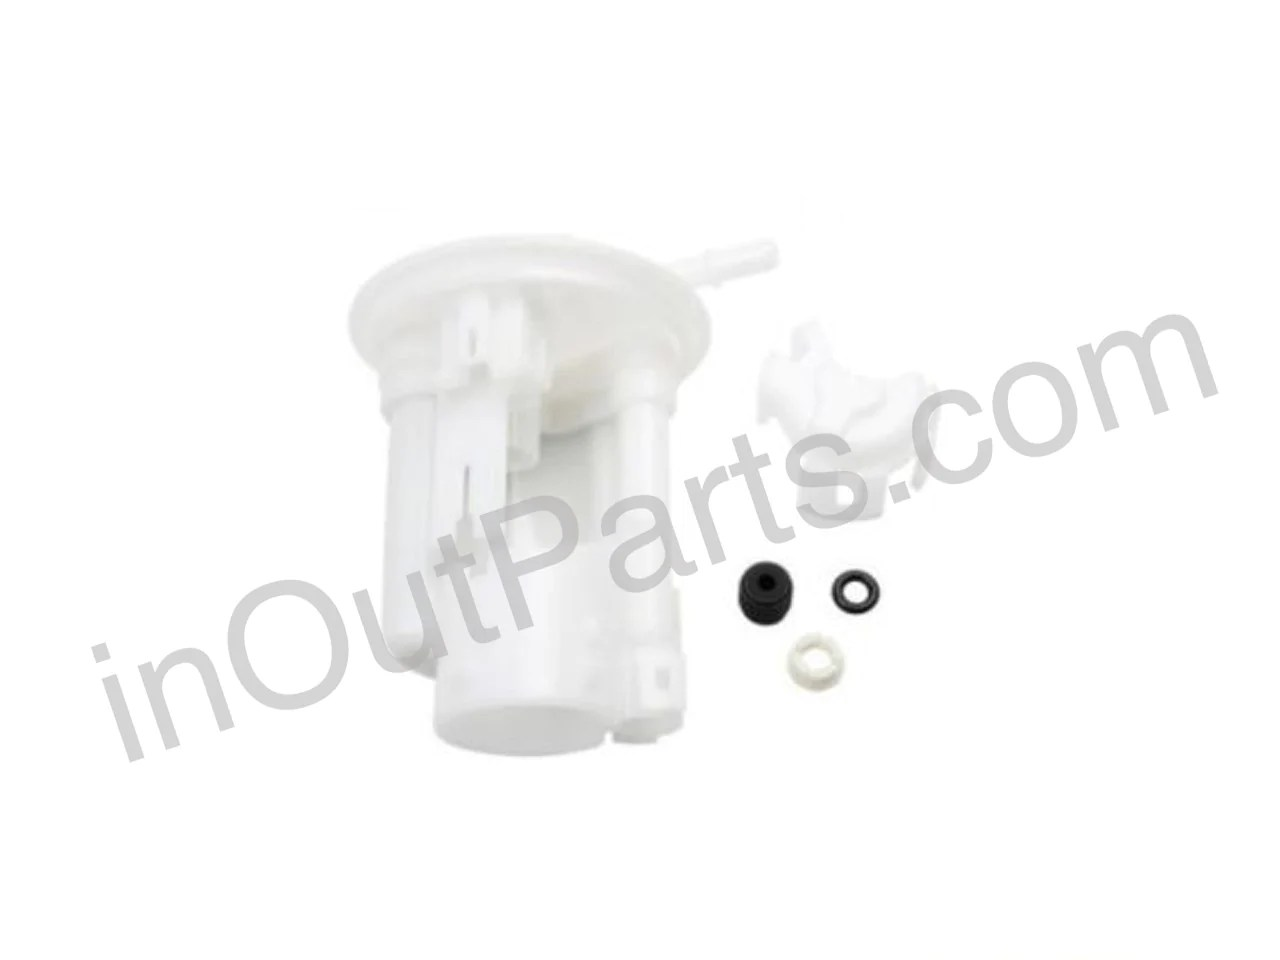 small resolution of fuel filter fits honda stream 2000 2001 2002 2003 2004 2005 2006 inout parts